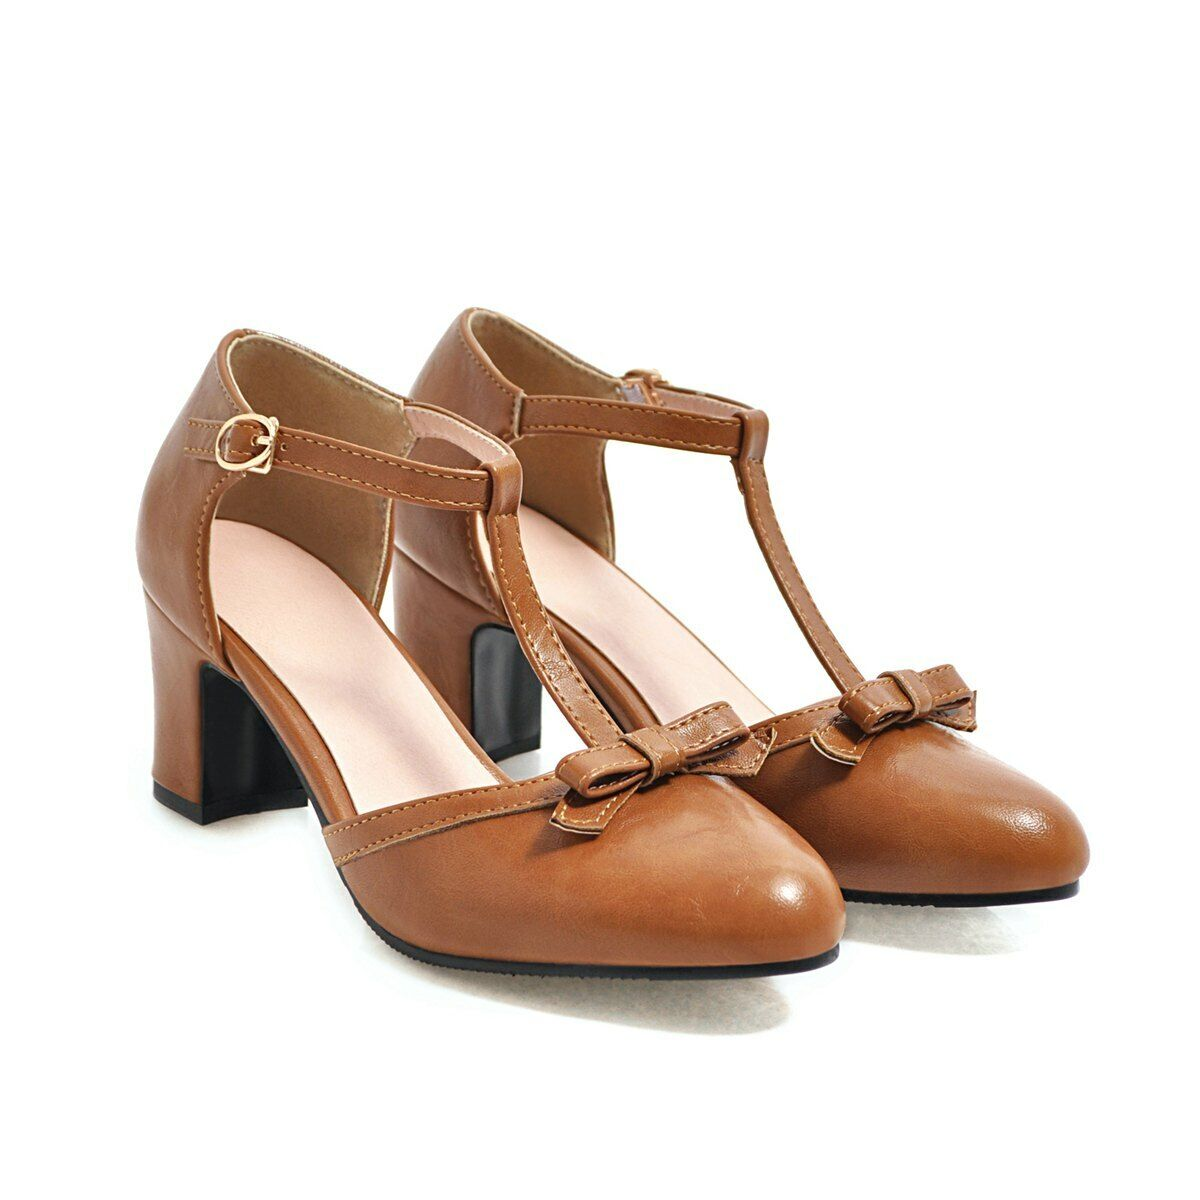 Womens Mary Janes T-Strap Round Toe Block Heels Faux Leather Leather Leather Bows Casual shoes 75a858